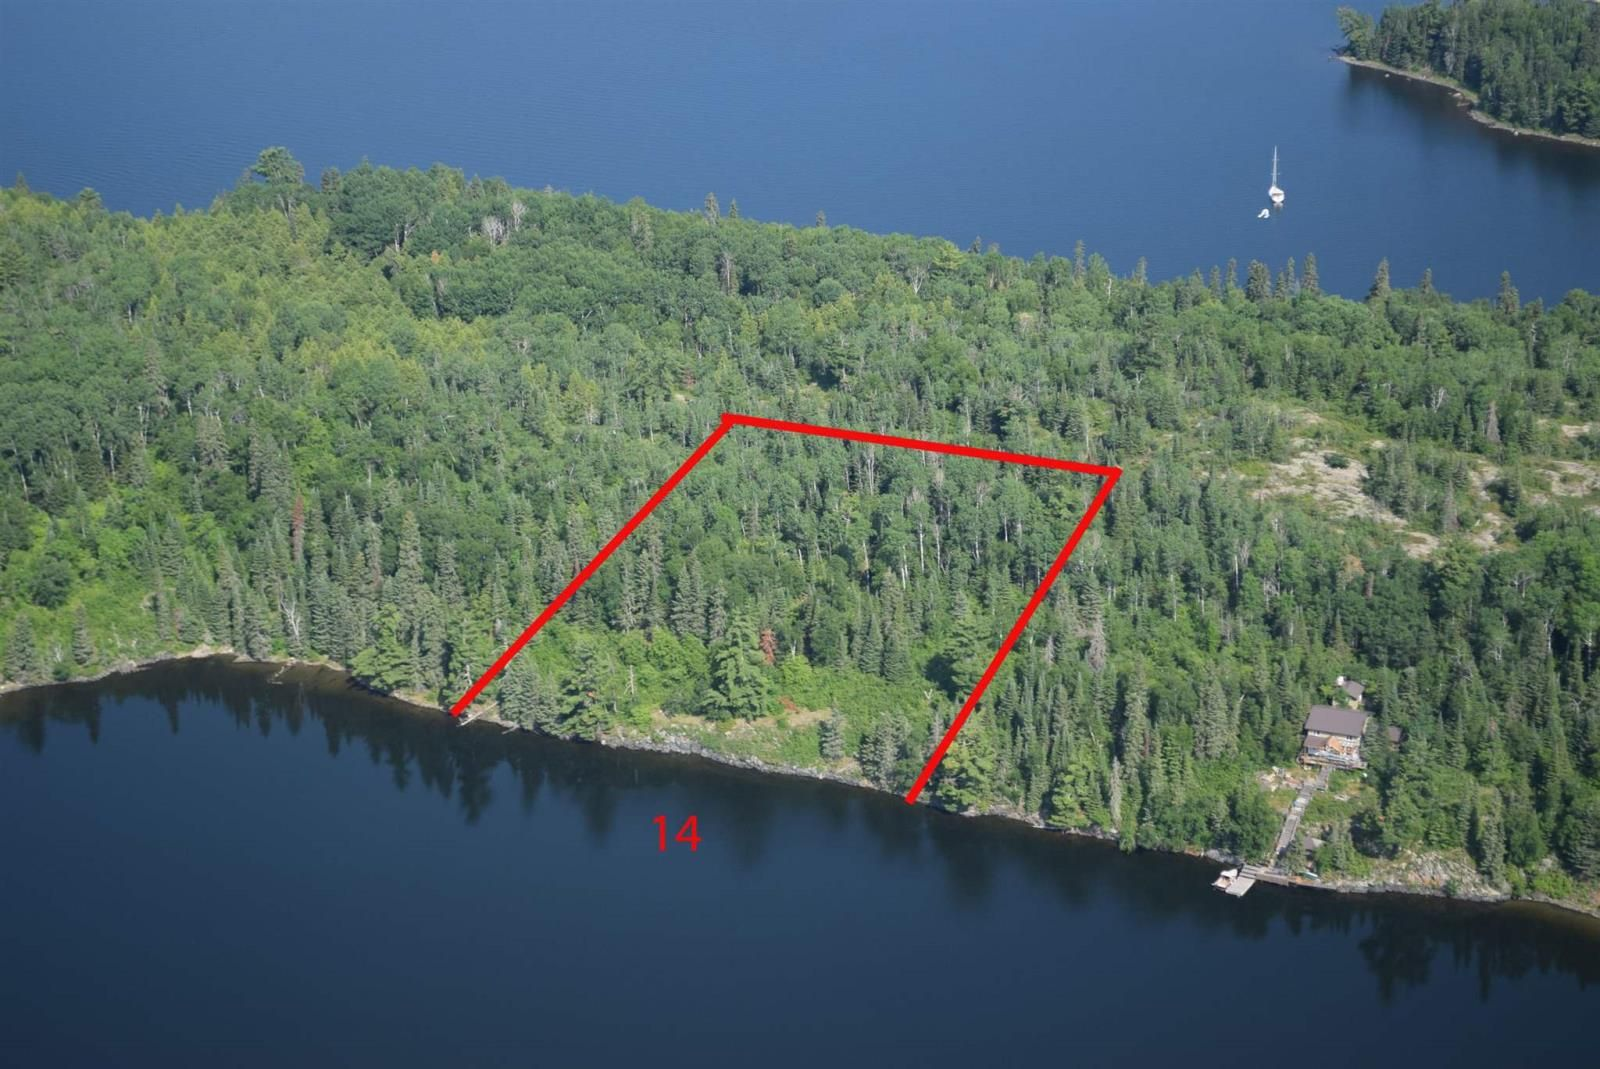 Main Photo: Lot 14 Five Point Island in South of Kenora: Vacant Land for sale : MLS®# TB212086